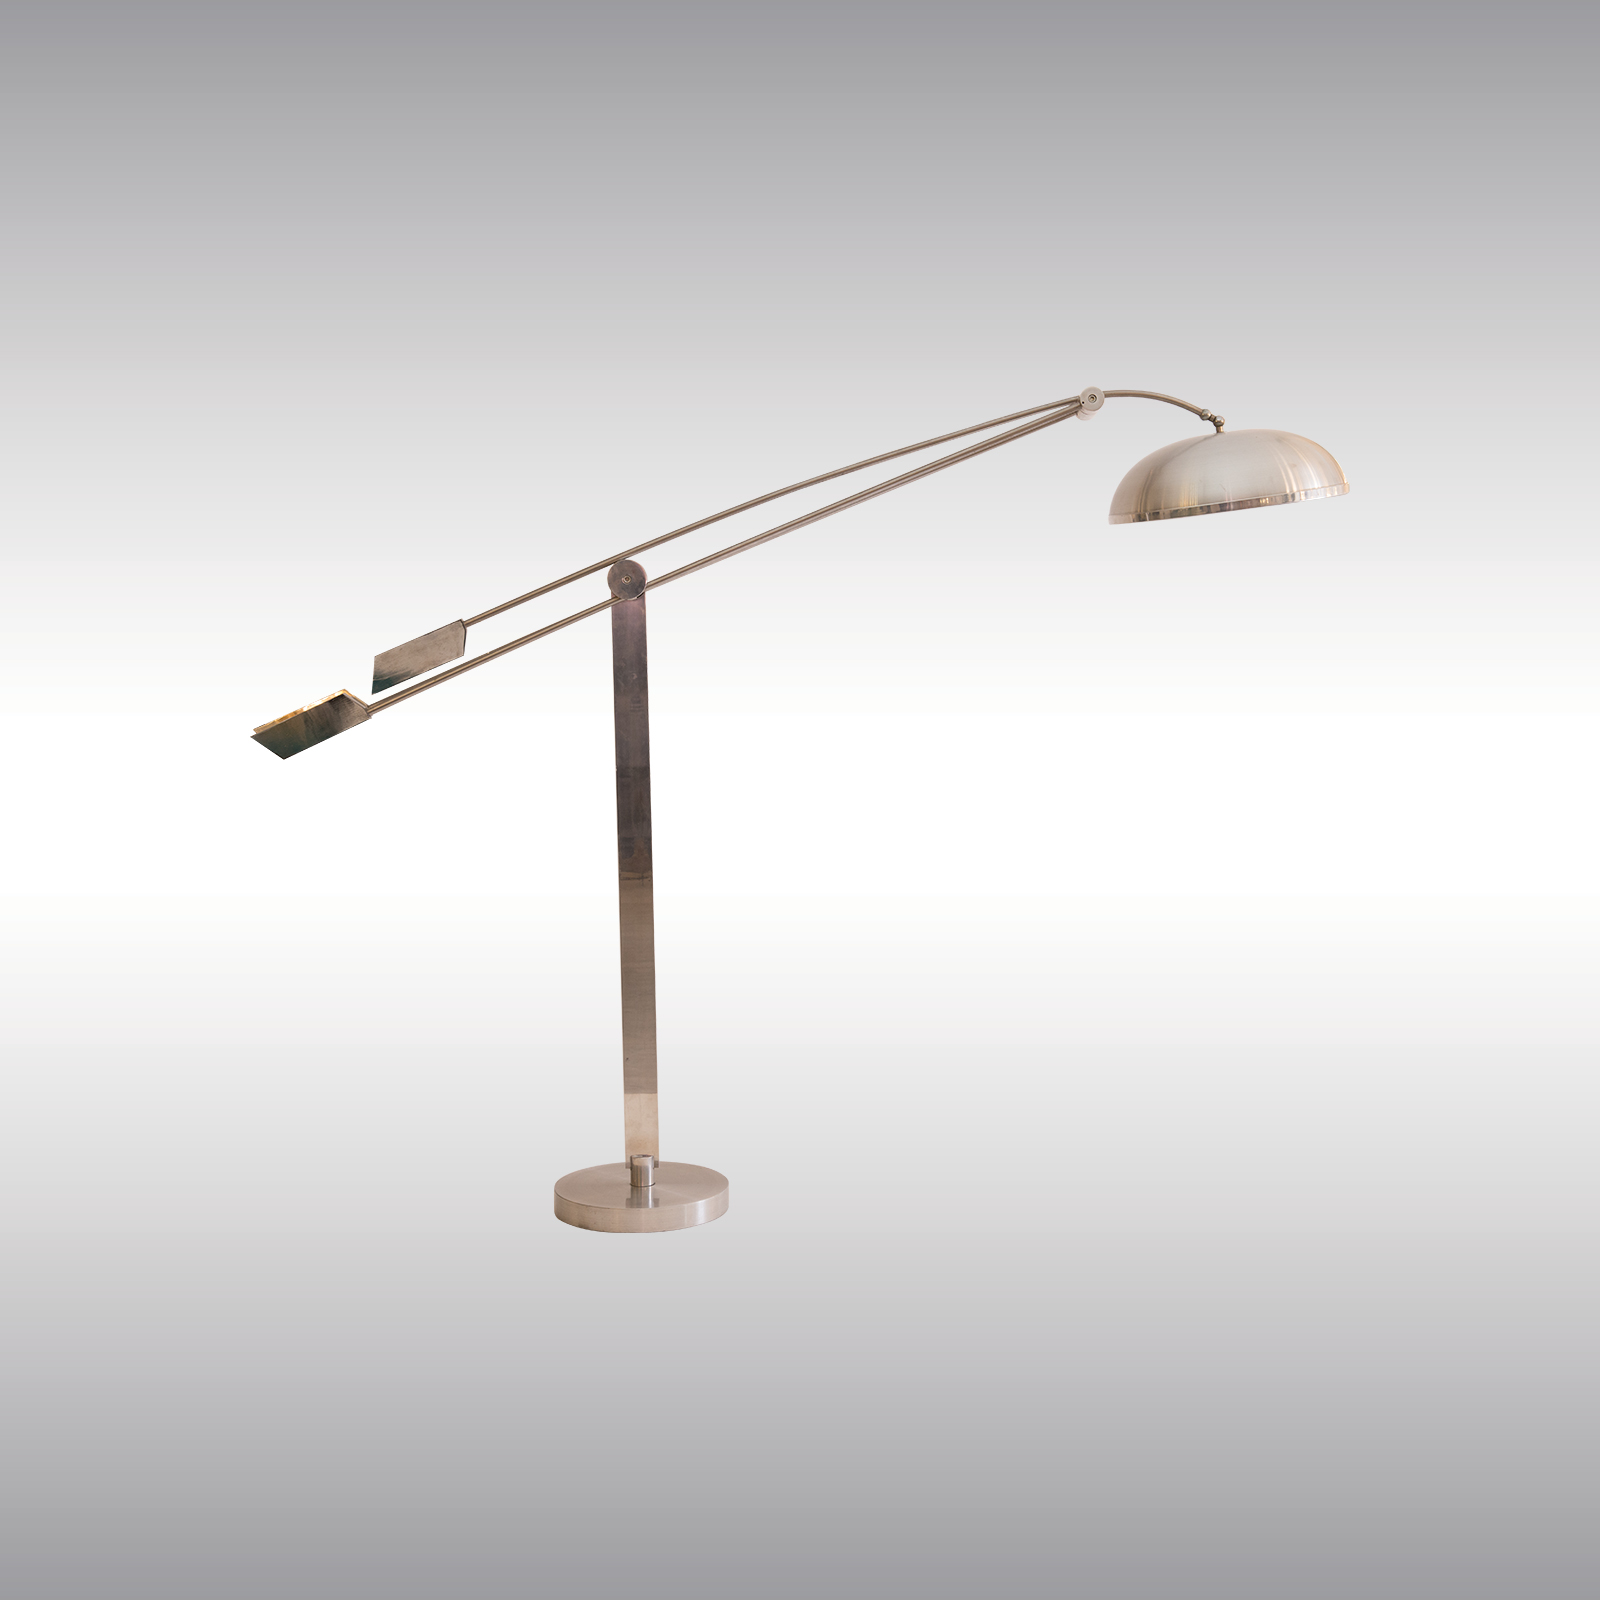 Woka lamps vienna 50061 bauhaus style floor lamp machine age woka lamps vienna original 50061 bauhaus style floor lamp machine age design aloadofball